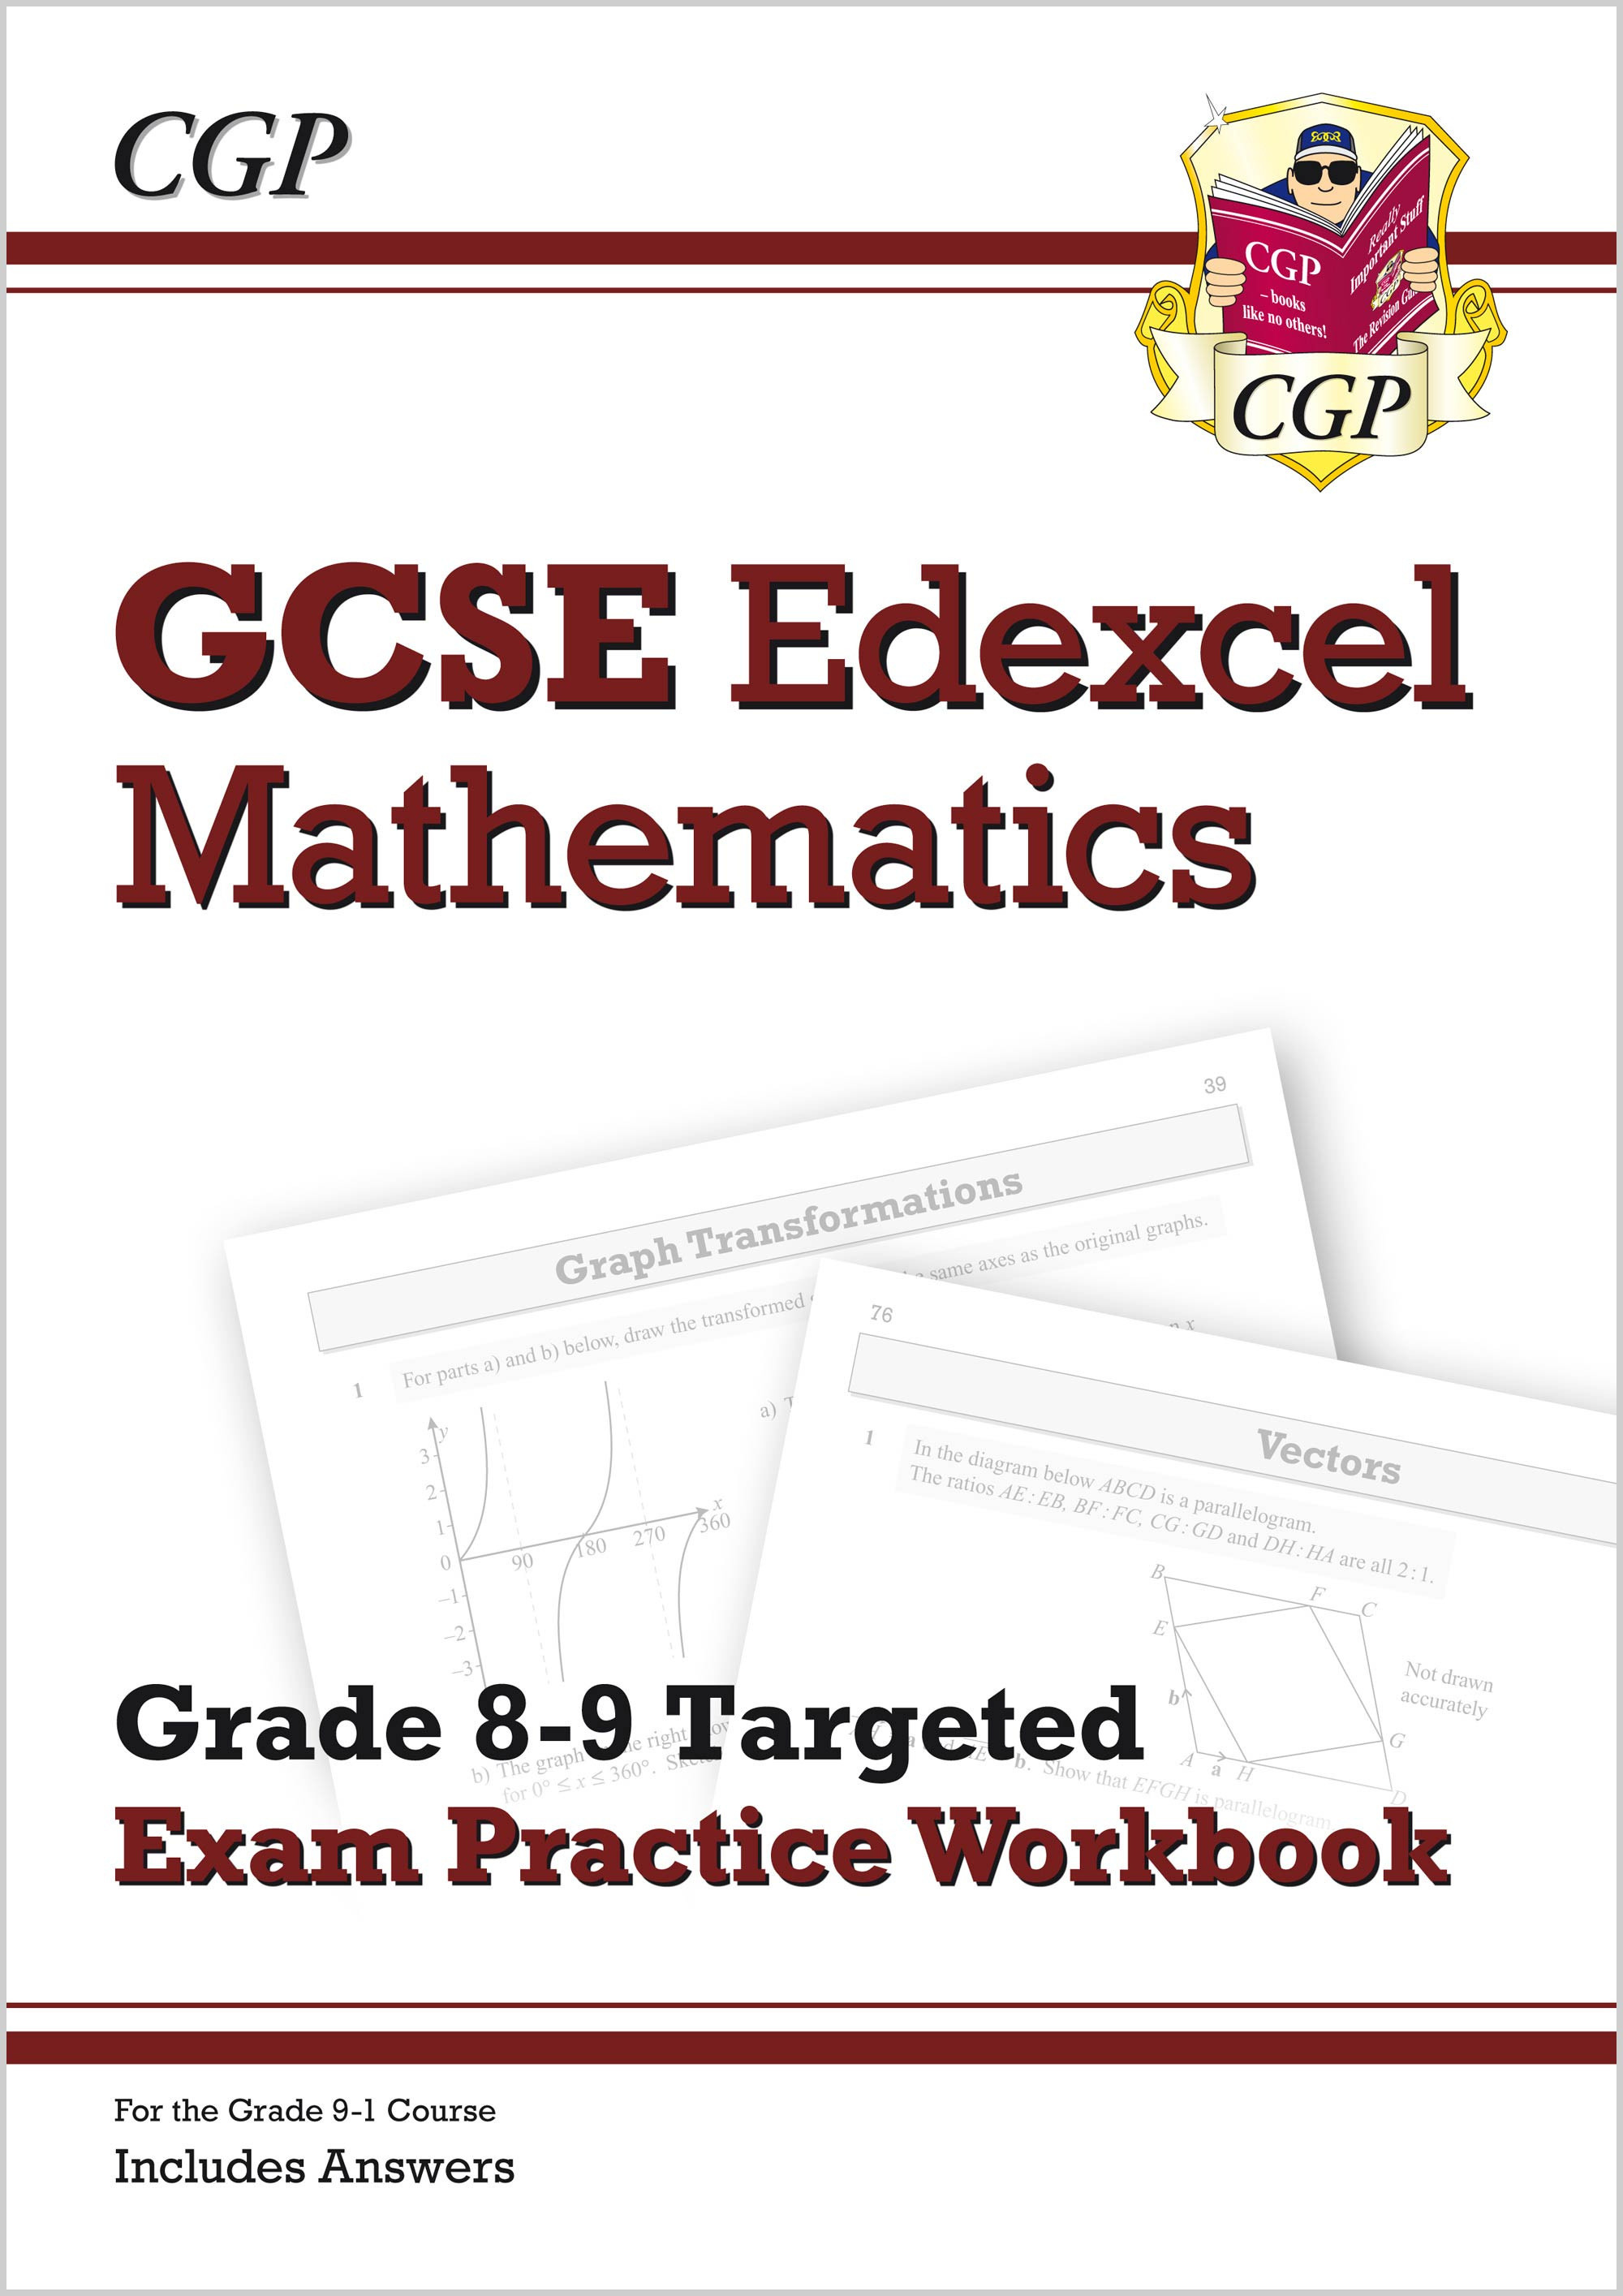 MX9Q42 - New GCSE Maths Edexcel Grade 8-9 Targeted Exam Practice Workbook (includes Answers)